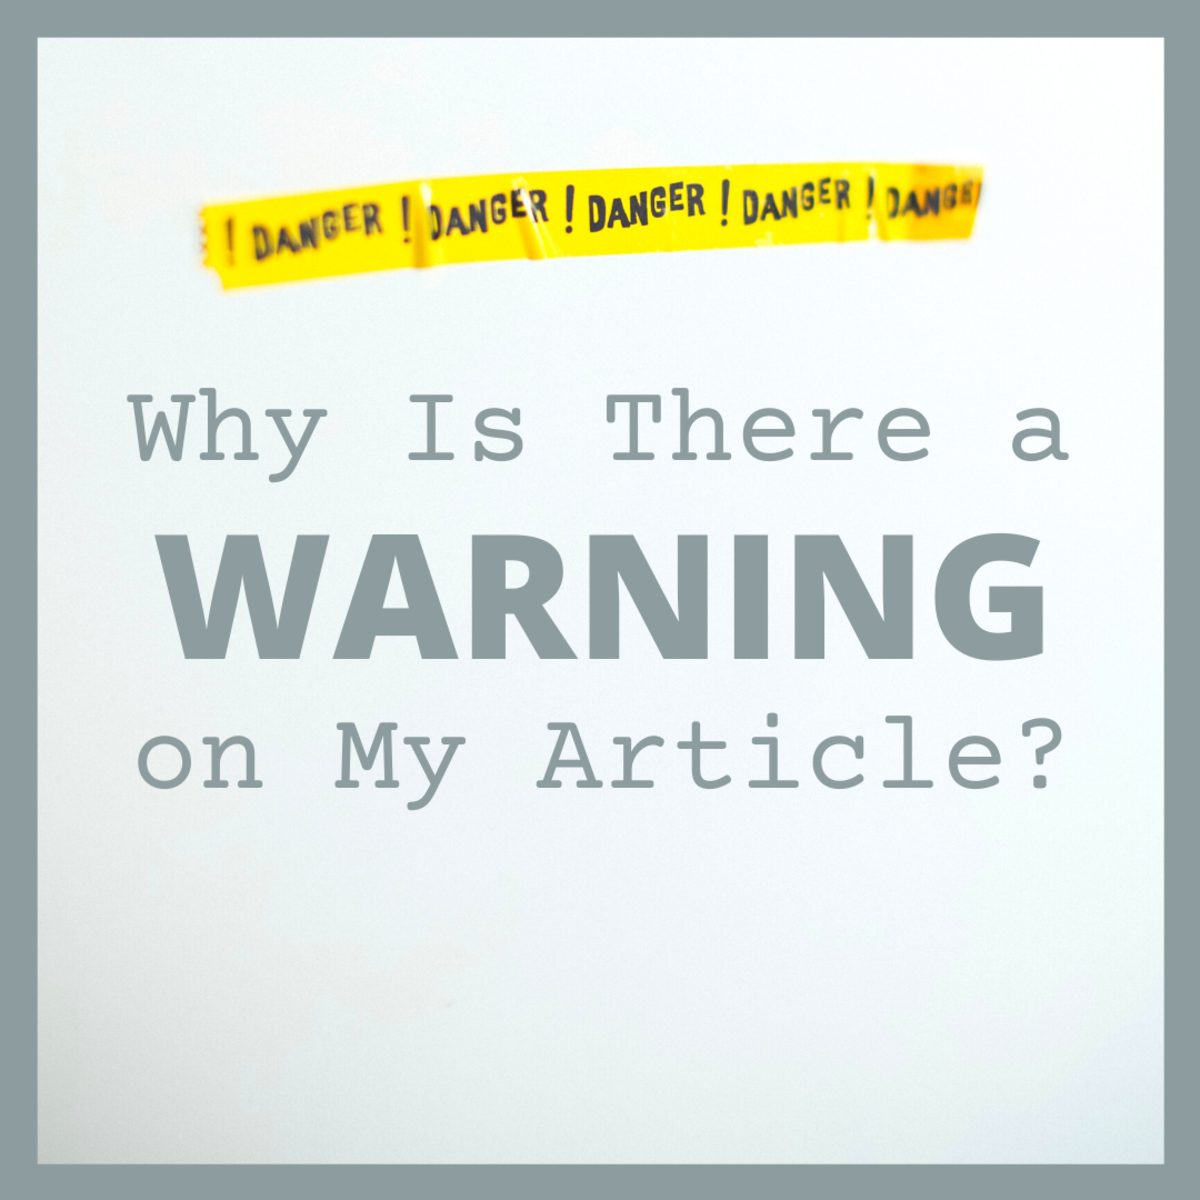 What to Do if There is a Warning on Your Article